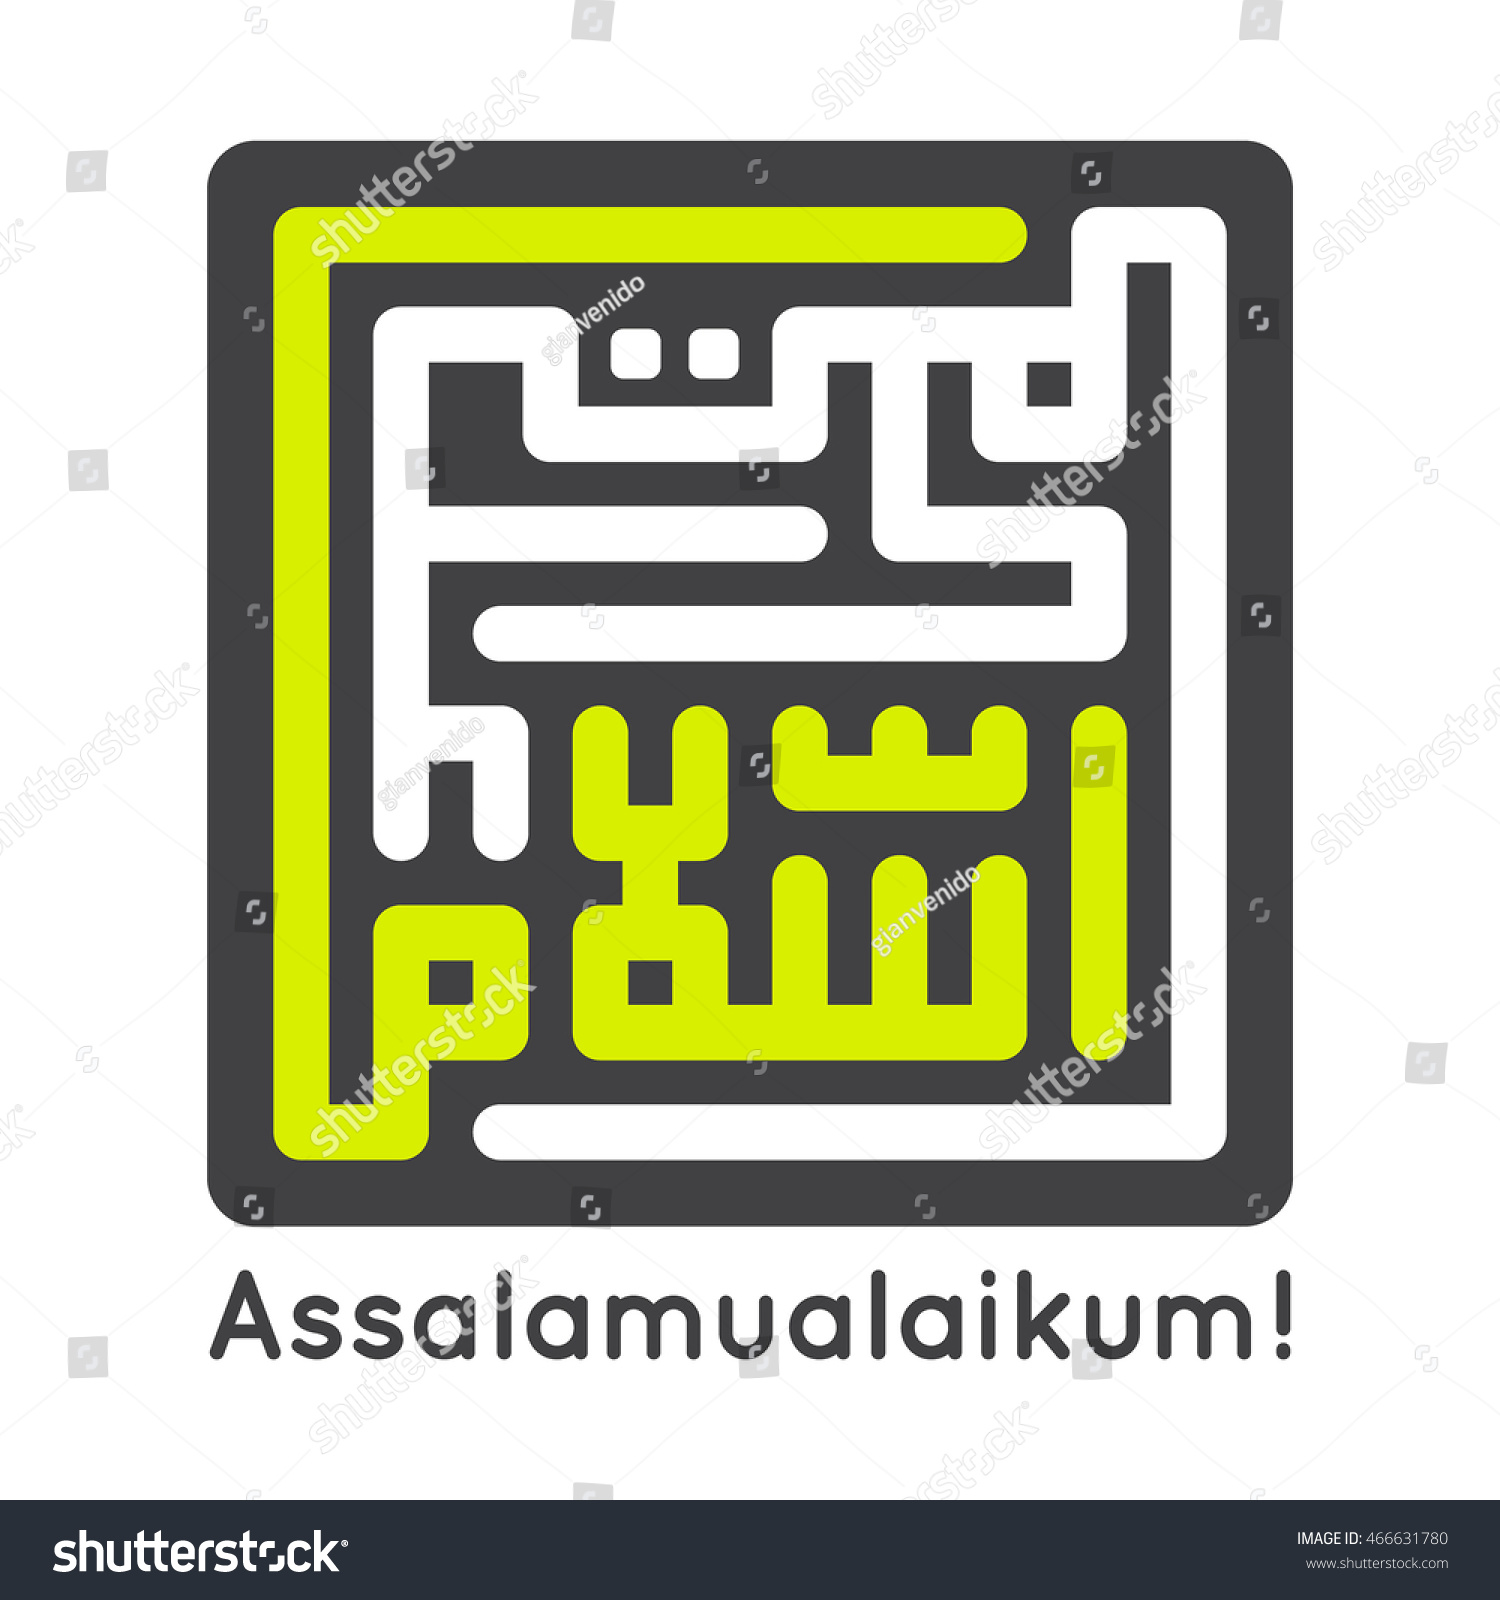 Arabic Greeting Rounded Kufic Style Salam Stock Vector Royalty Free